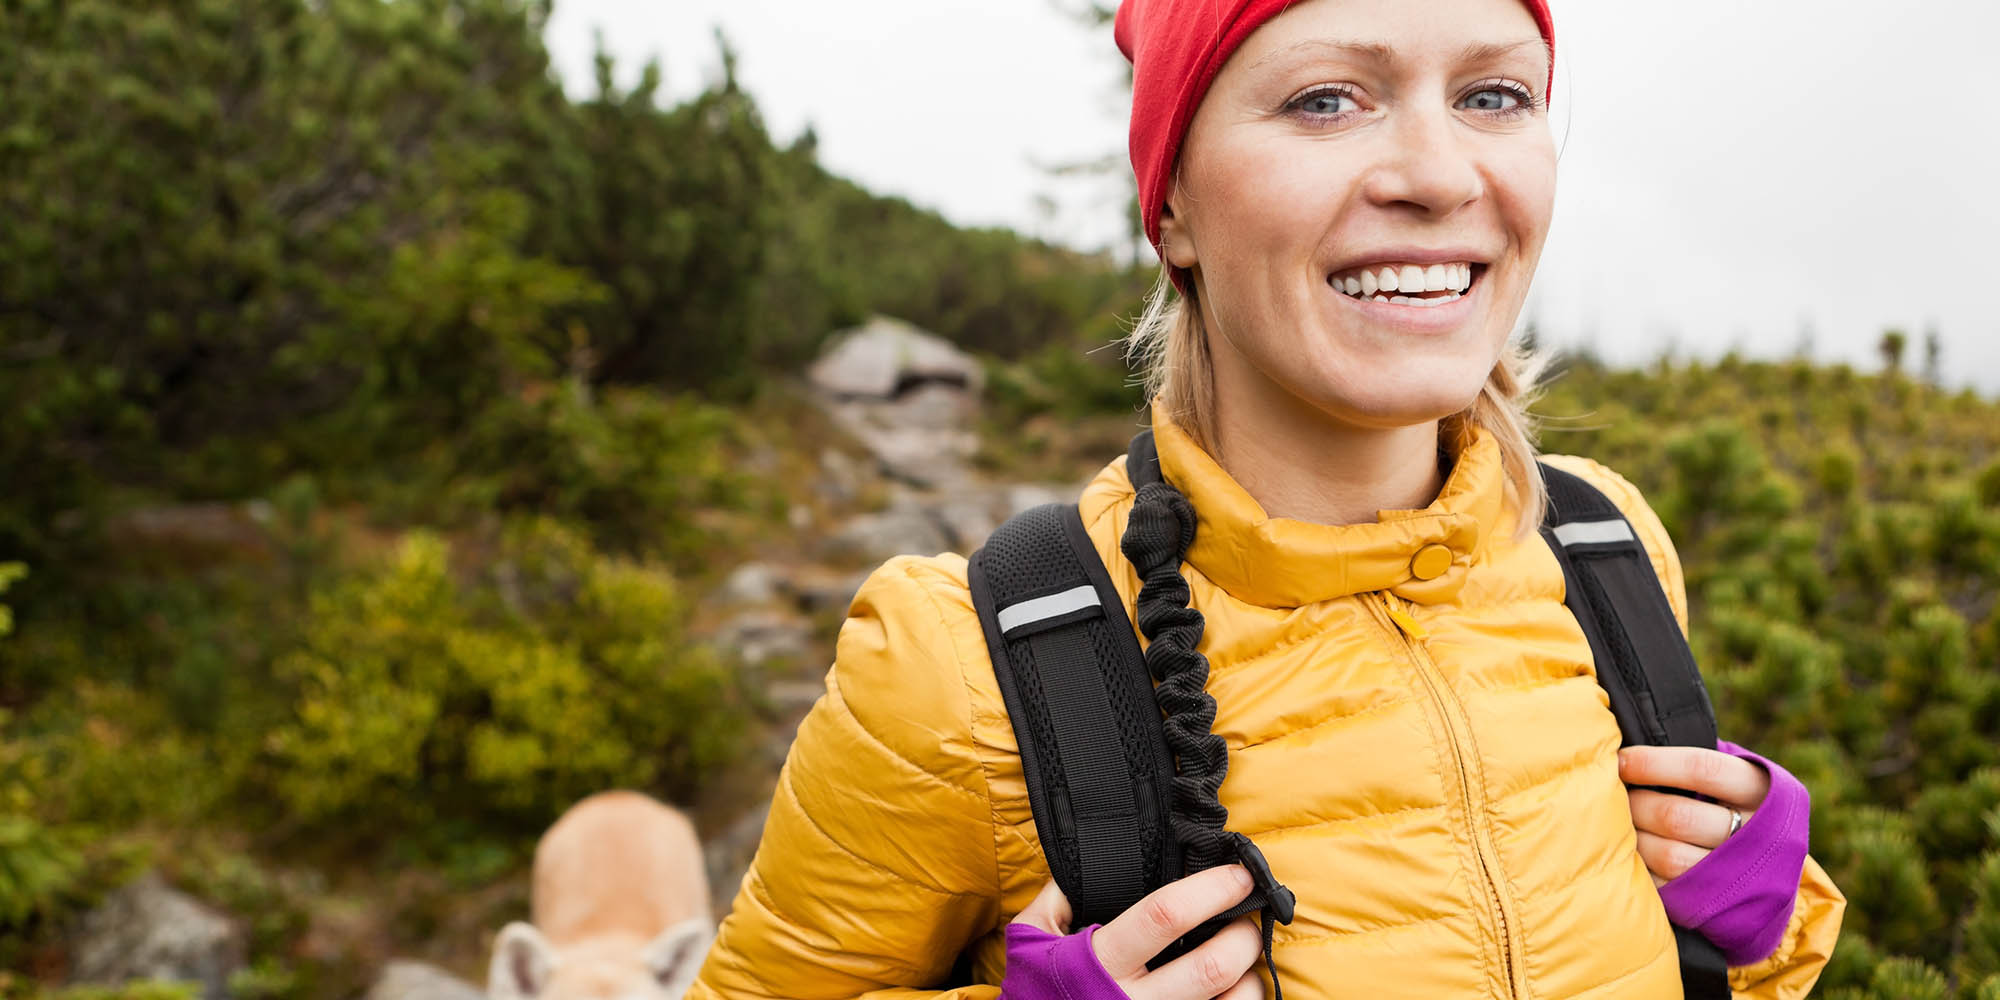 Hiking Gear Checklist: 11 Essentials to Bring on a Hike